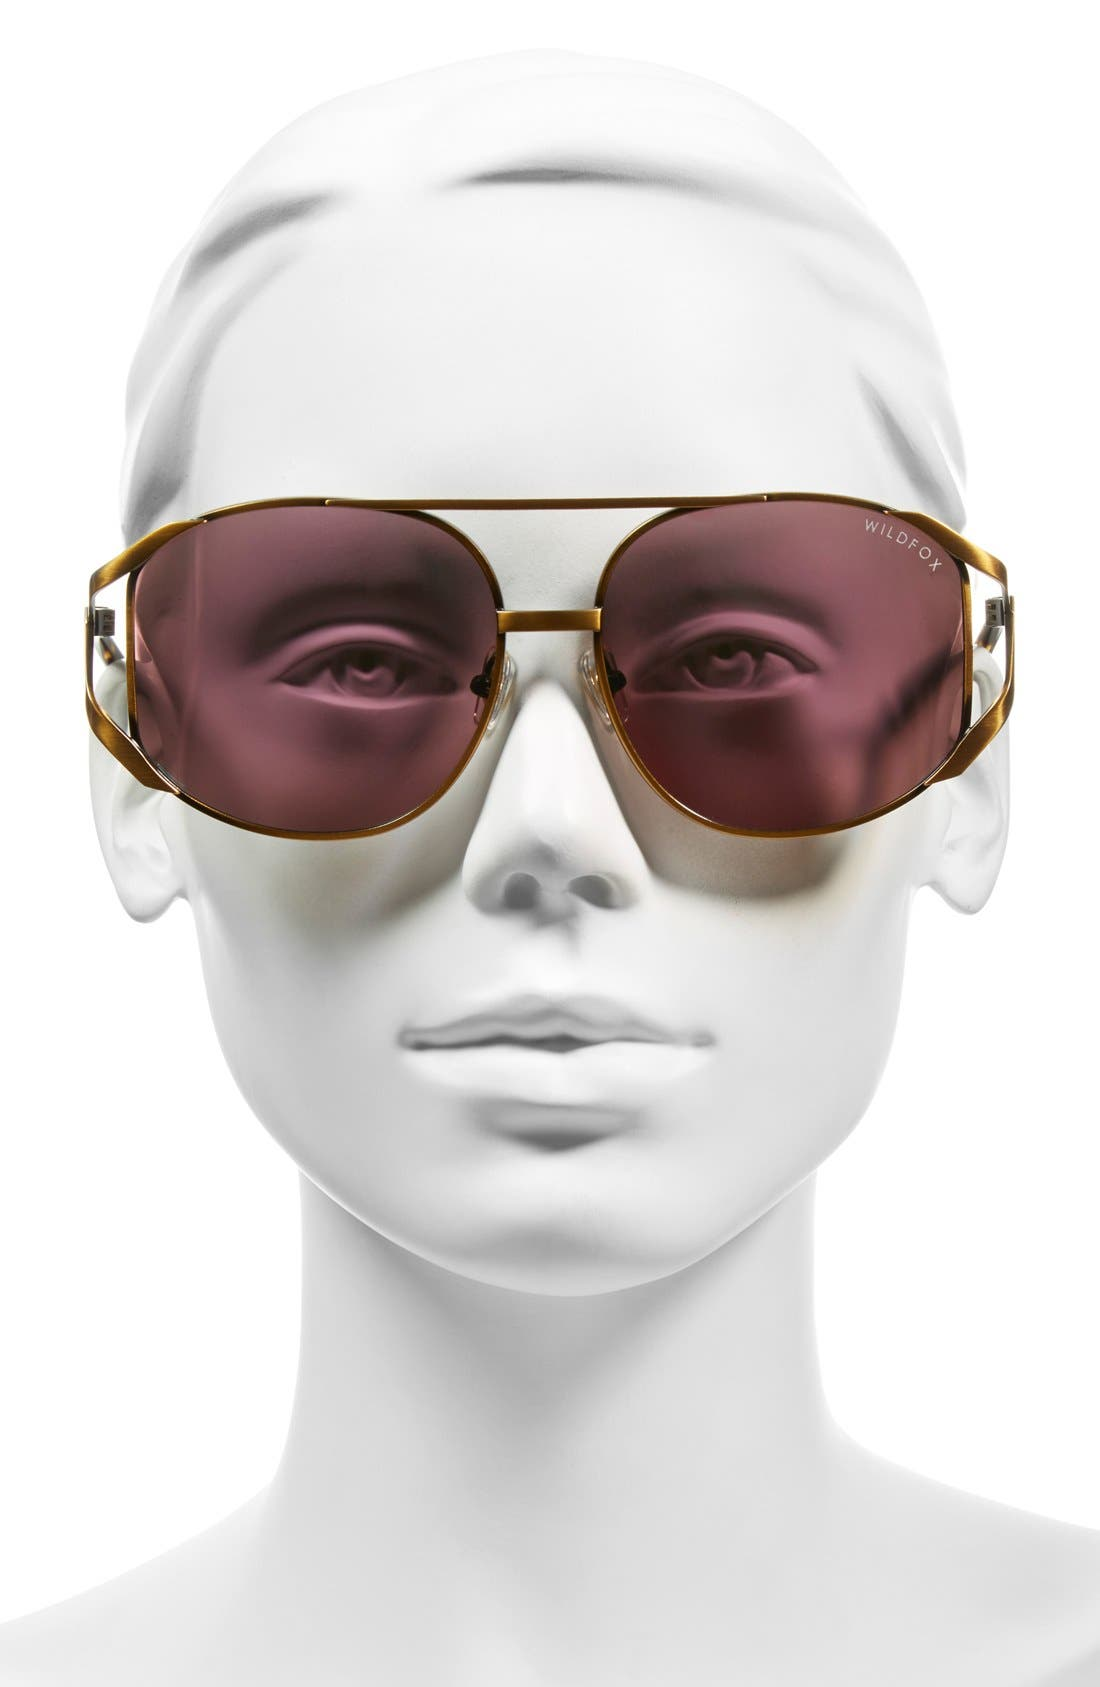 WILDFOX,                             'Dynasty Deluxe' 59mm Retro Sunglasses,                             Alternate thumbnail 2, color,                             710